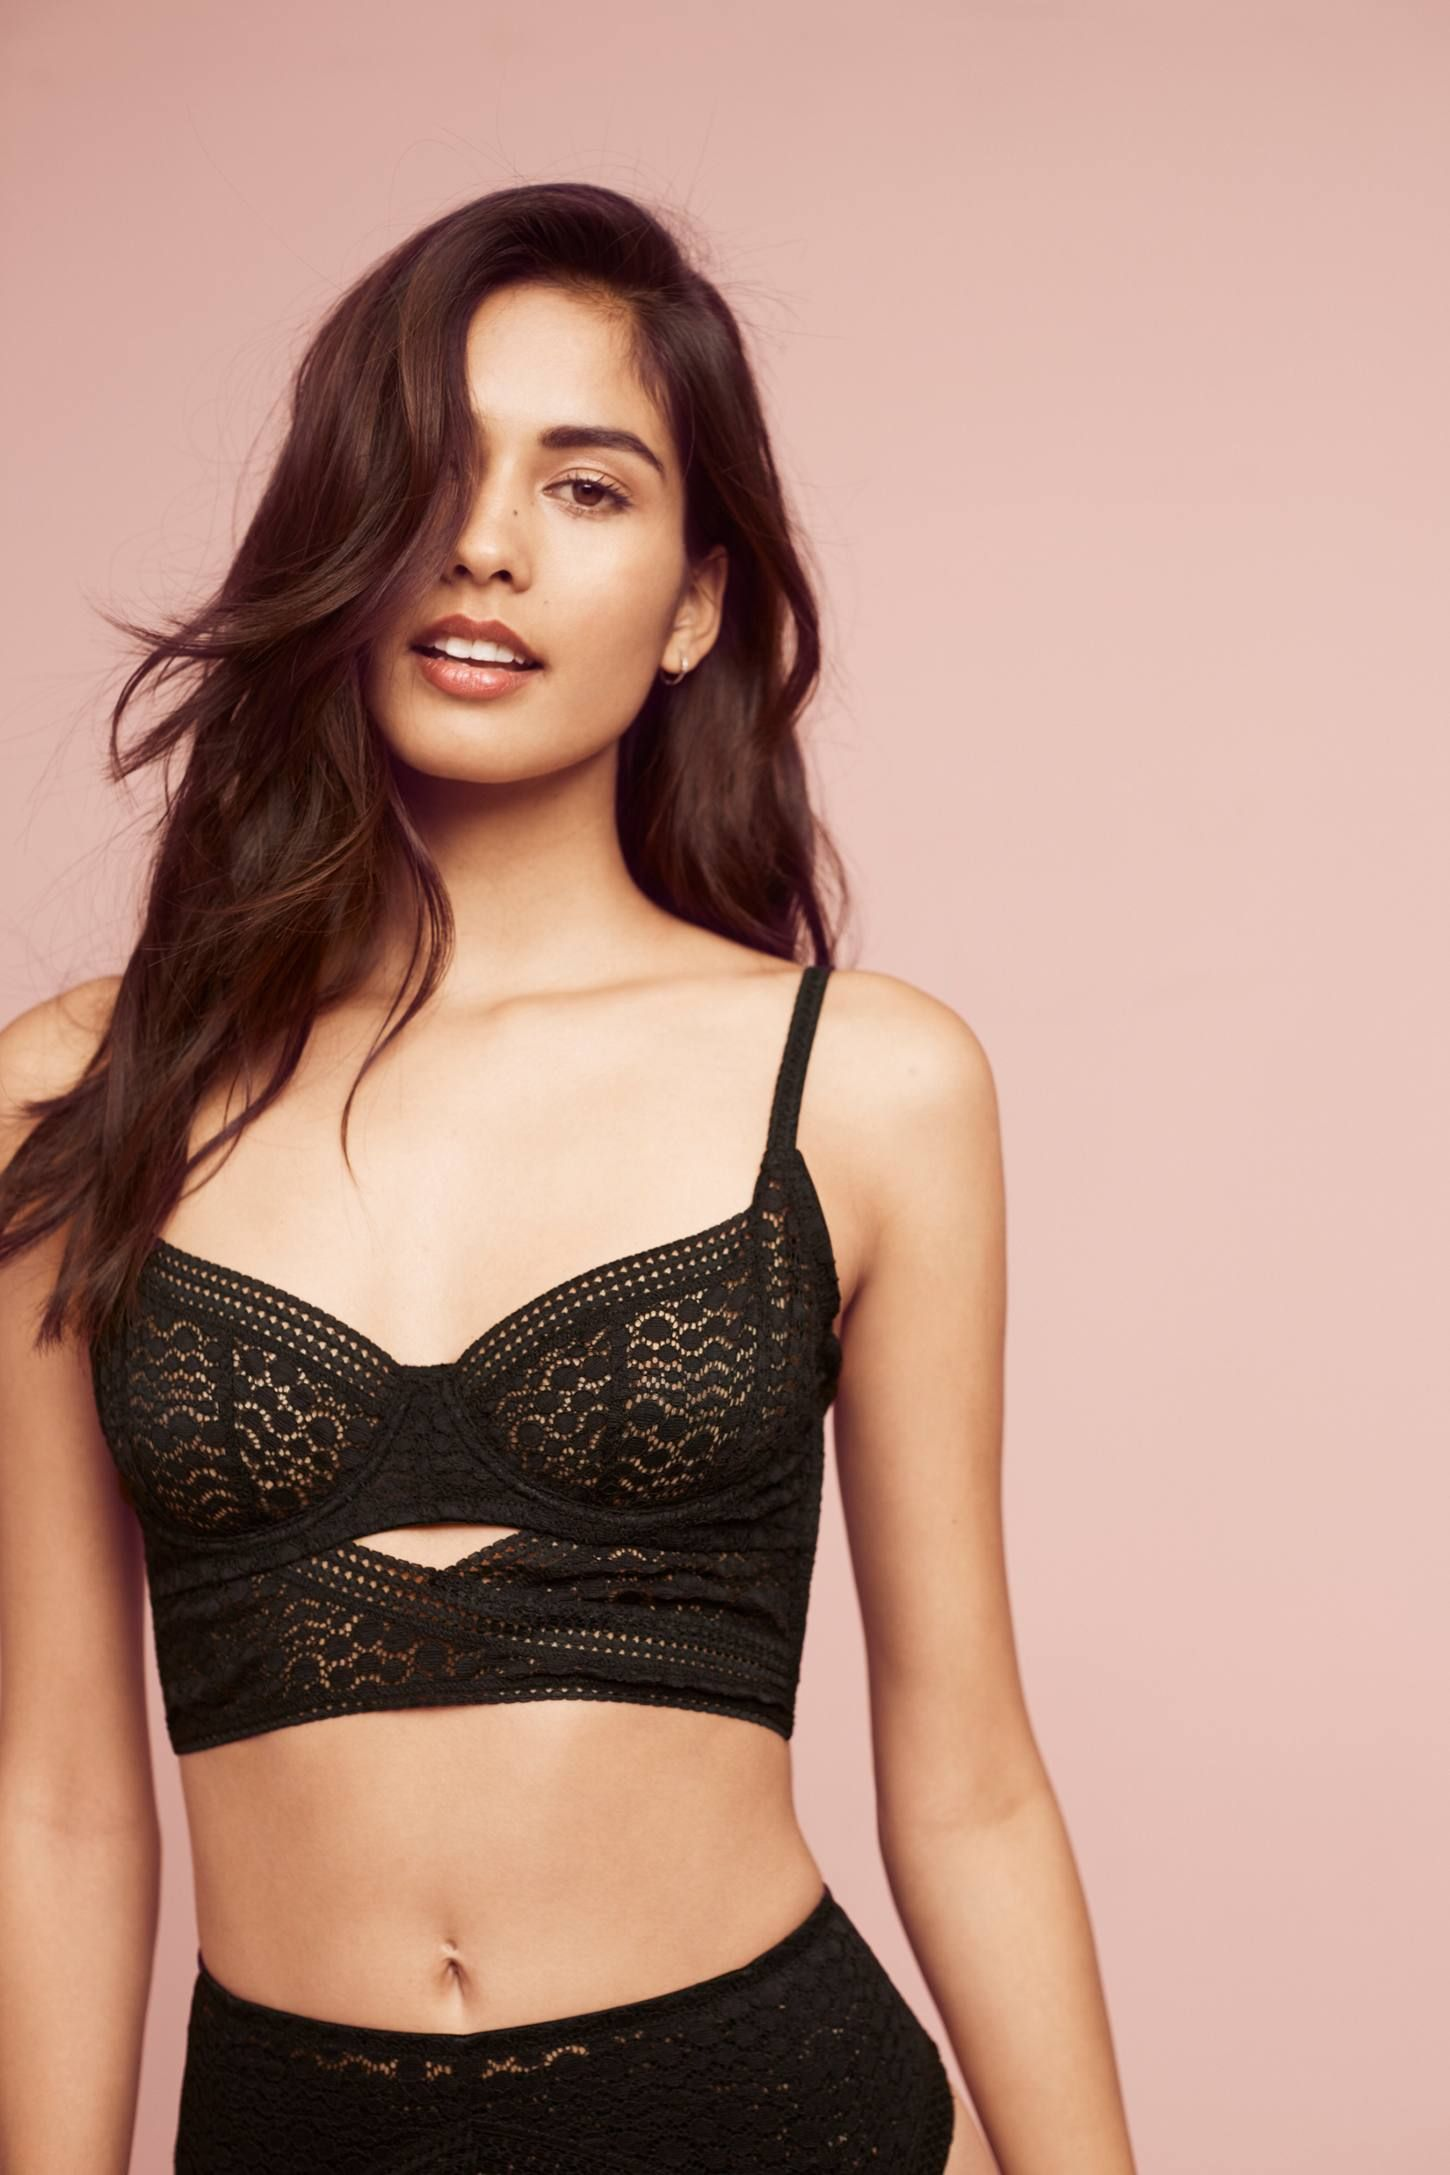 4e99ef6c0e8 Shop the Else Pebble Long-Line Bra and more Anthropologie at Anthropologie  today. Read customer reviews